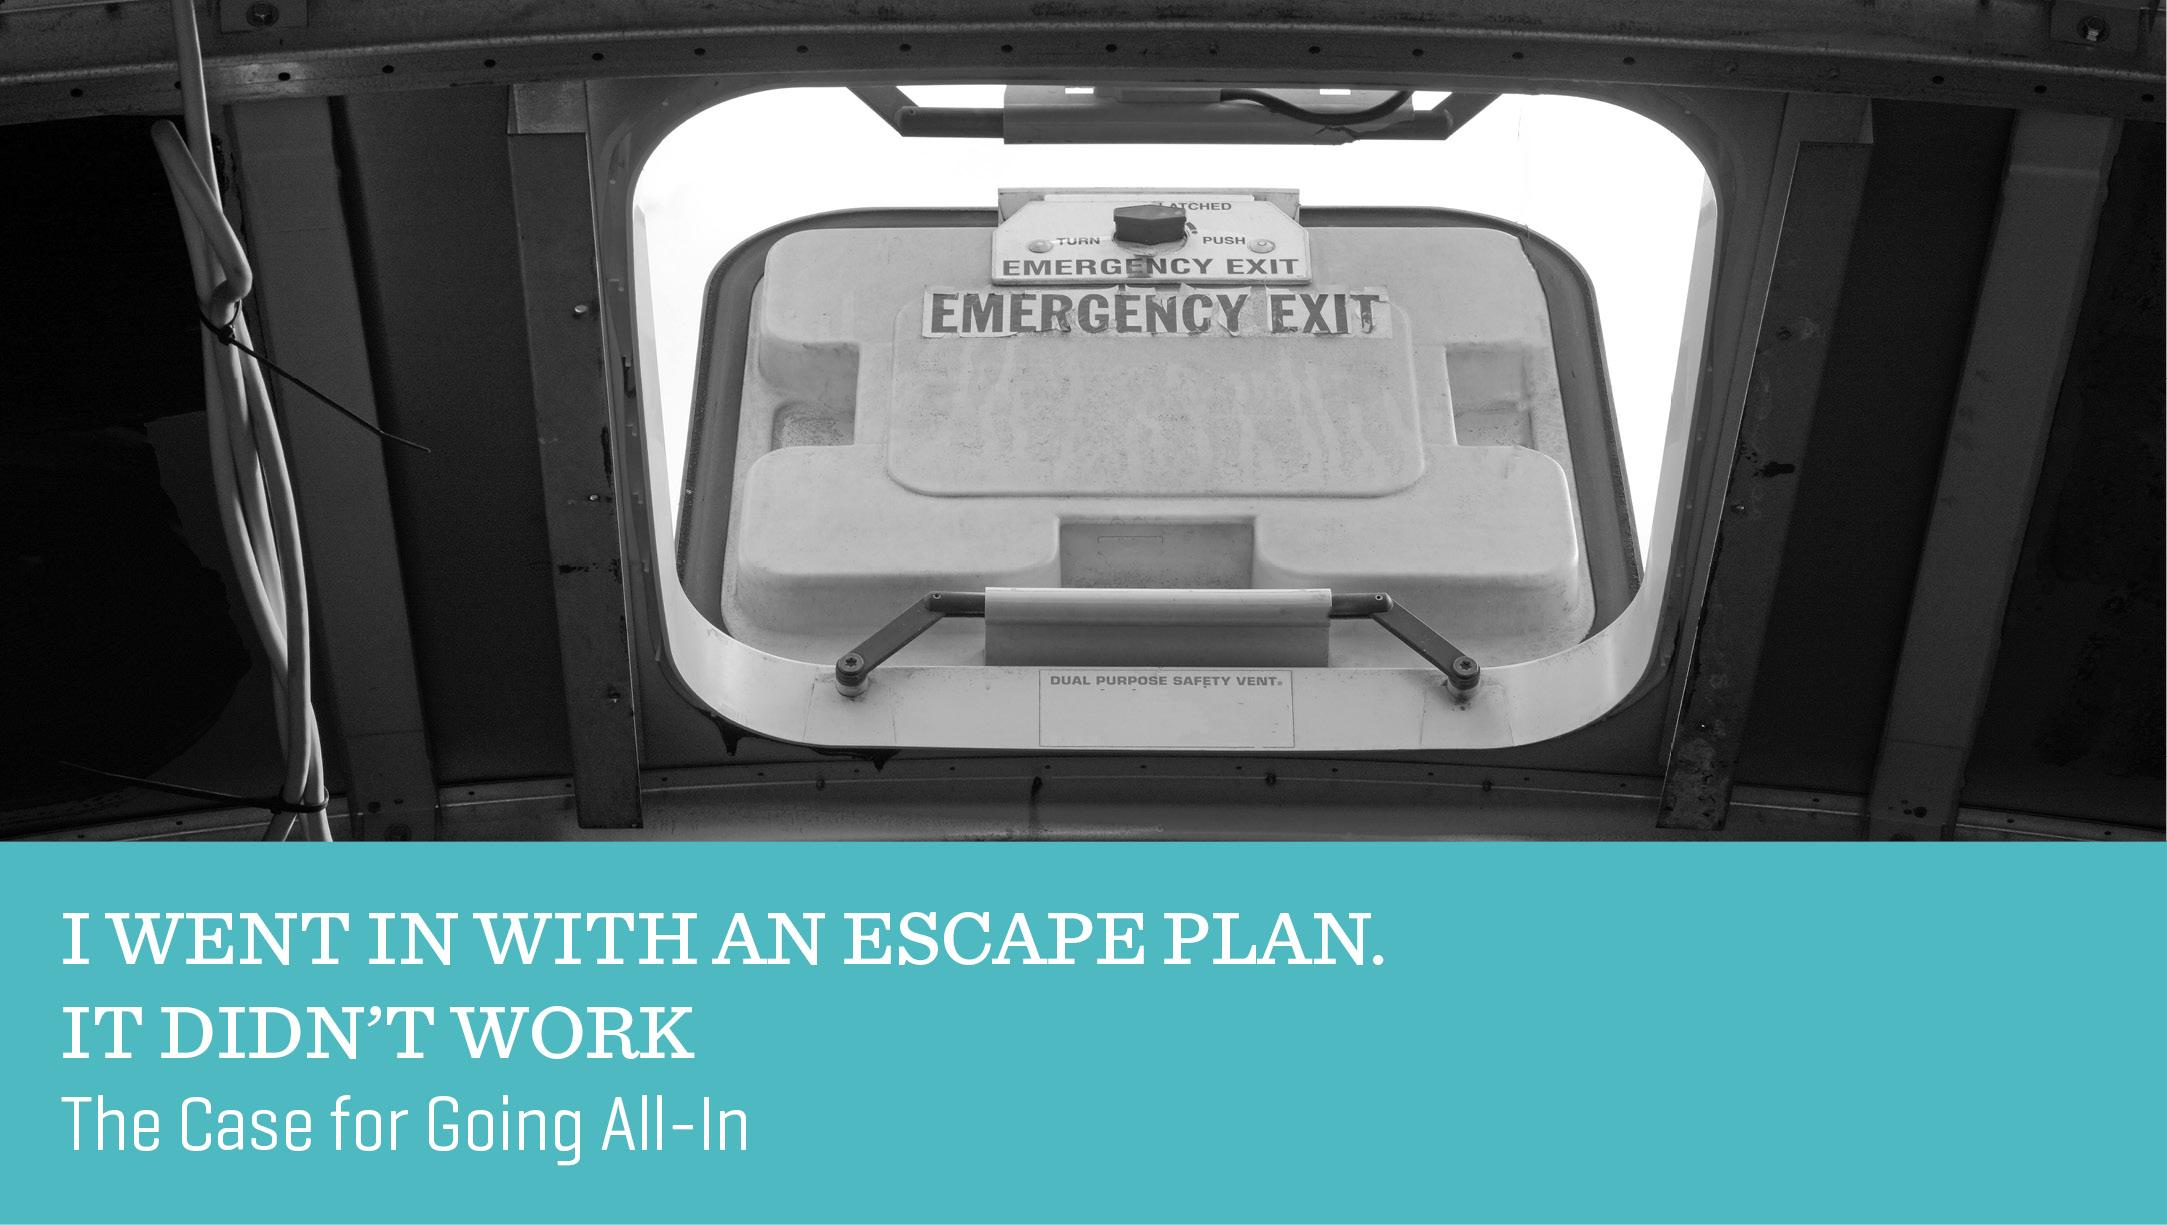 I Went in with an Escape Plan. It Didn't Work